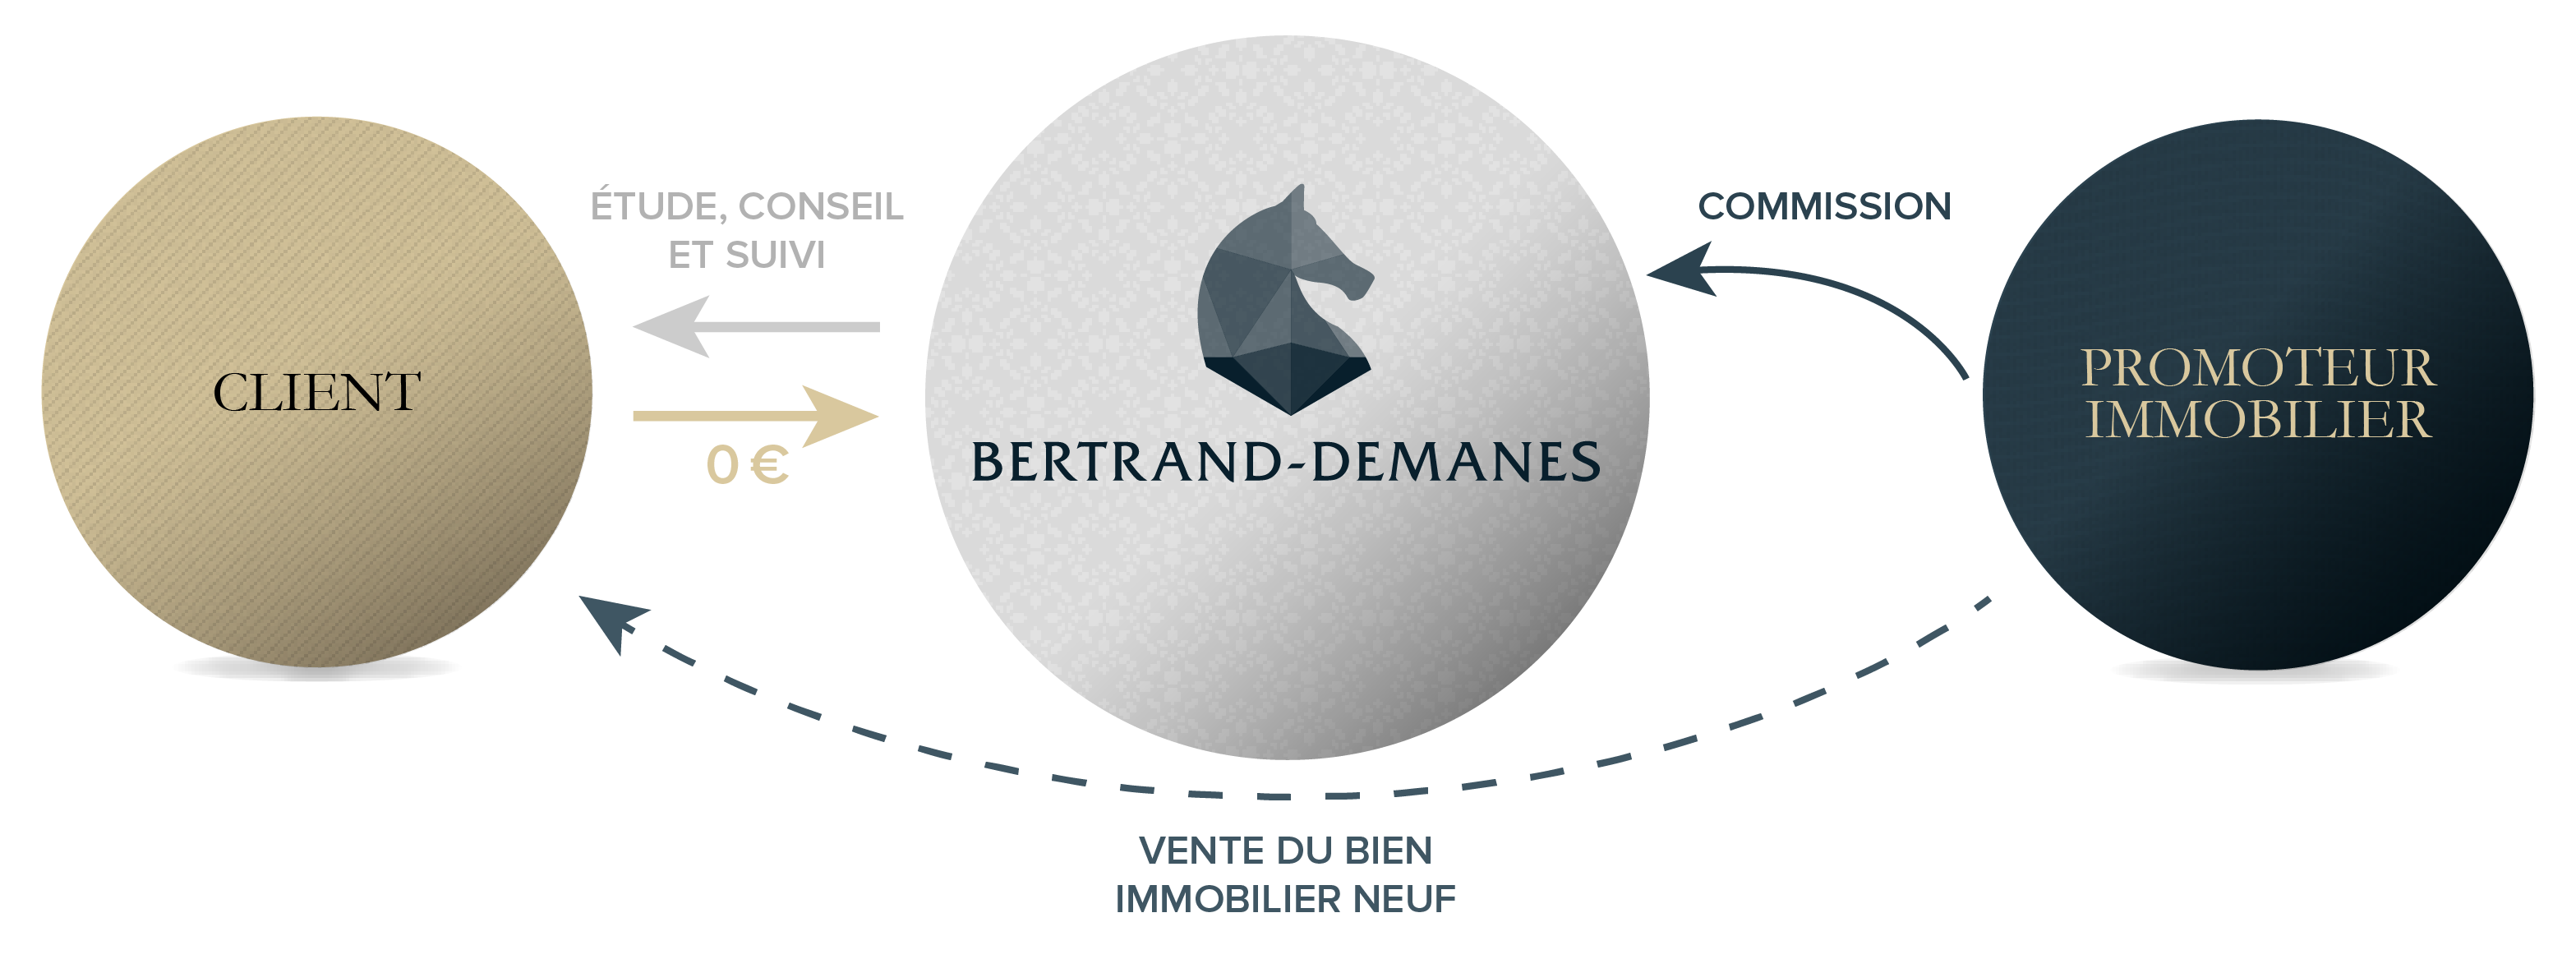 remuneration-bertrand-demanes